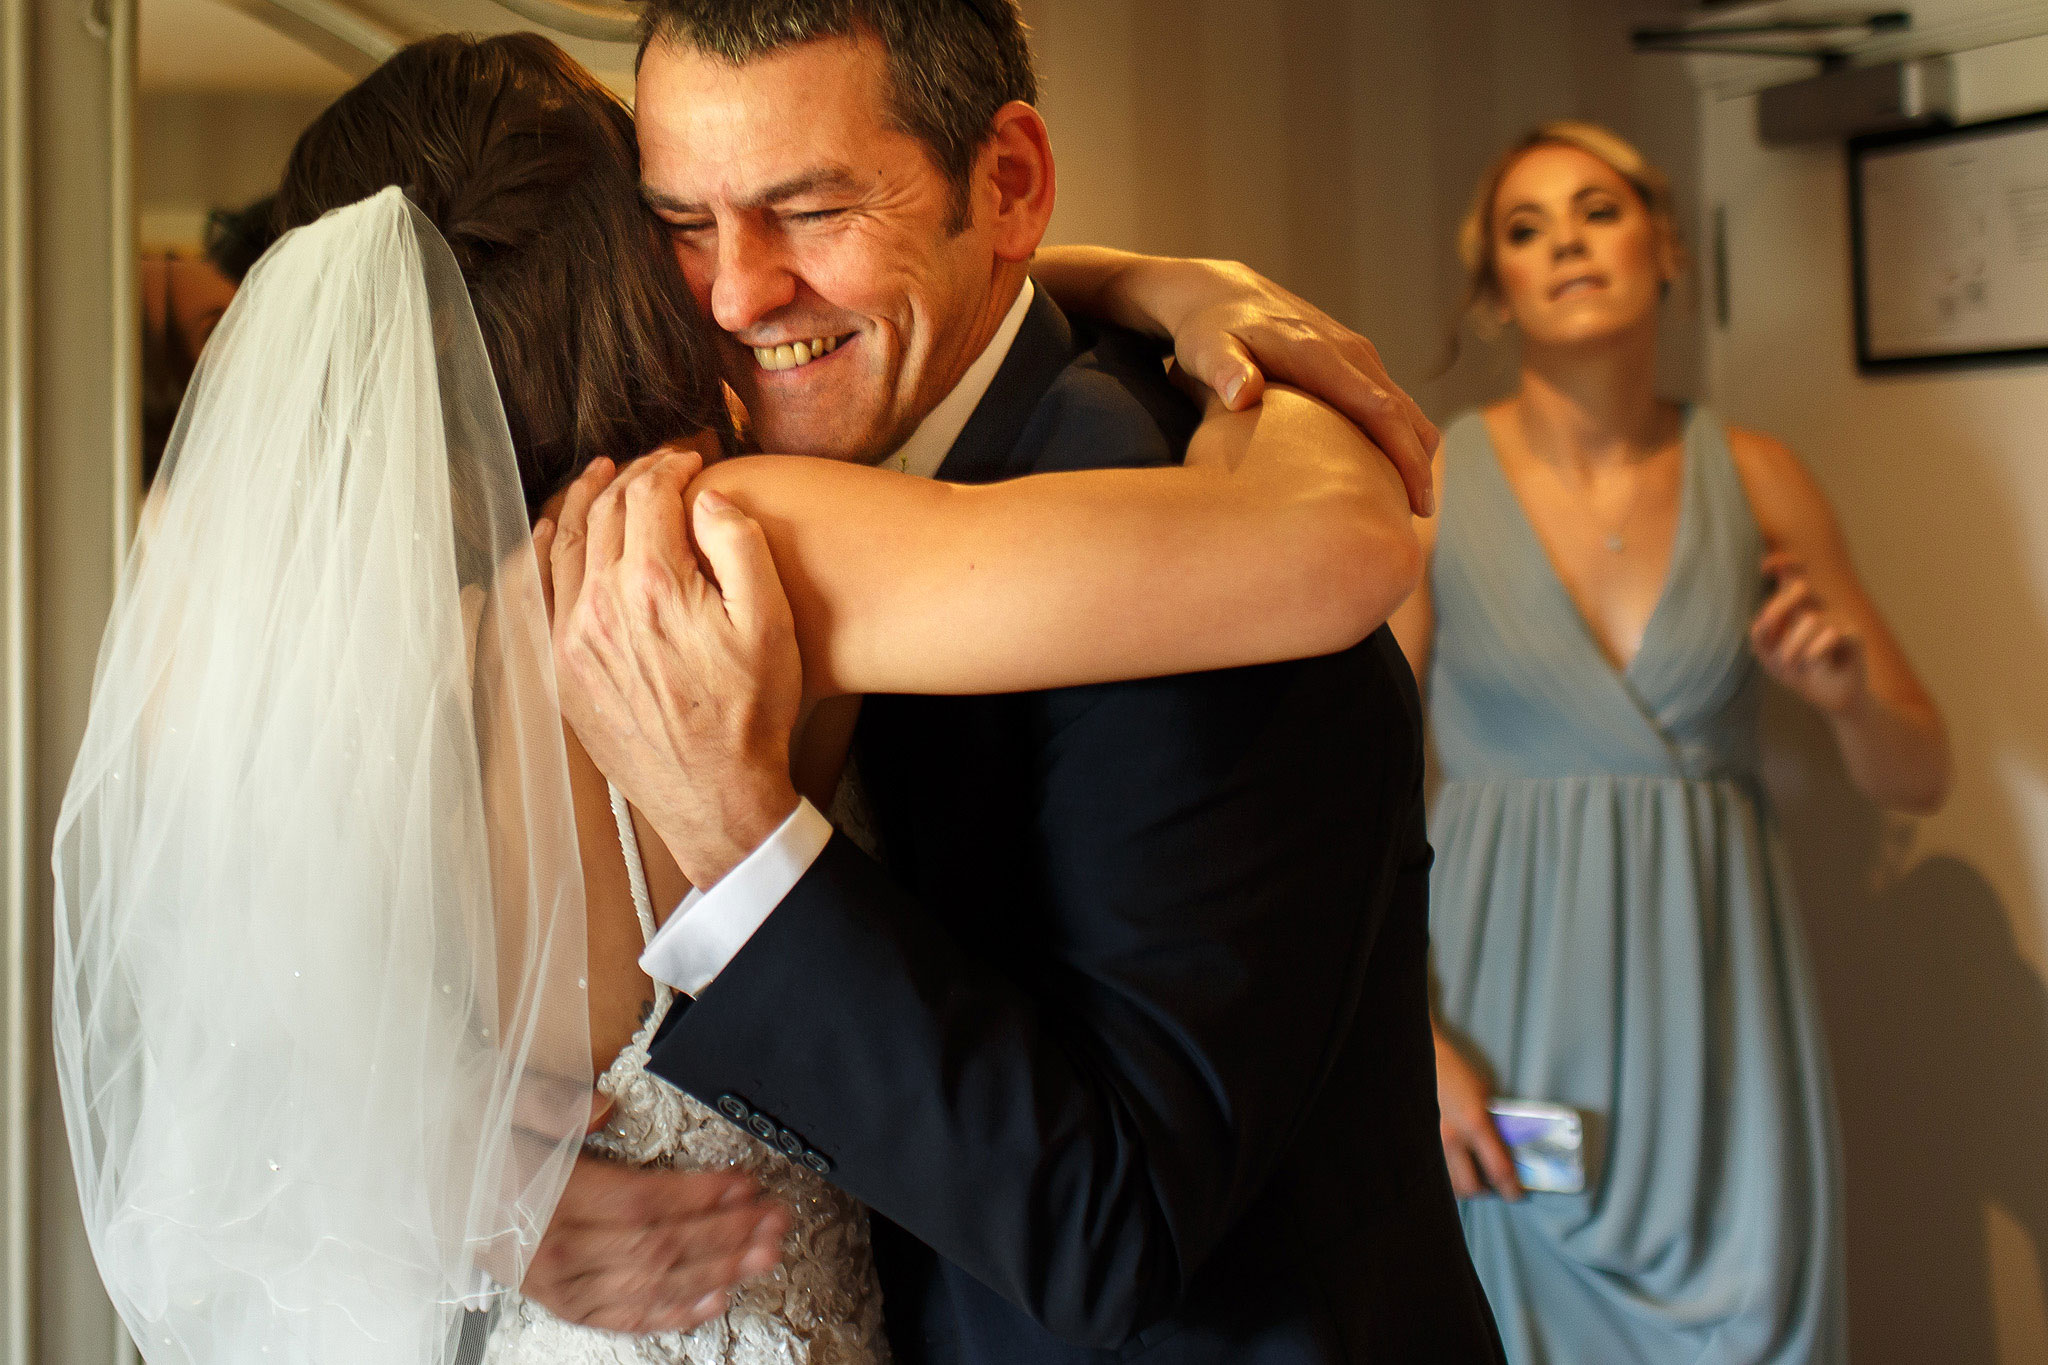 Father of the bride hugging bride as he sees her in her dress for the first time